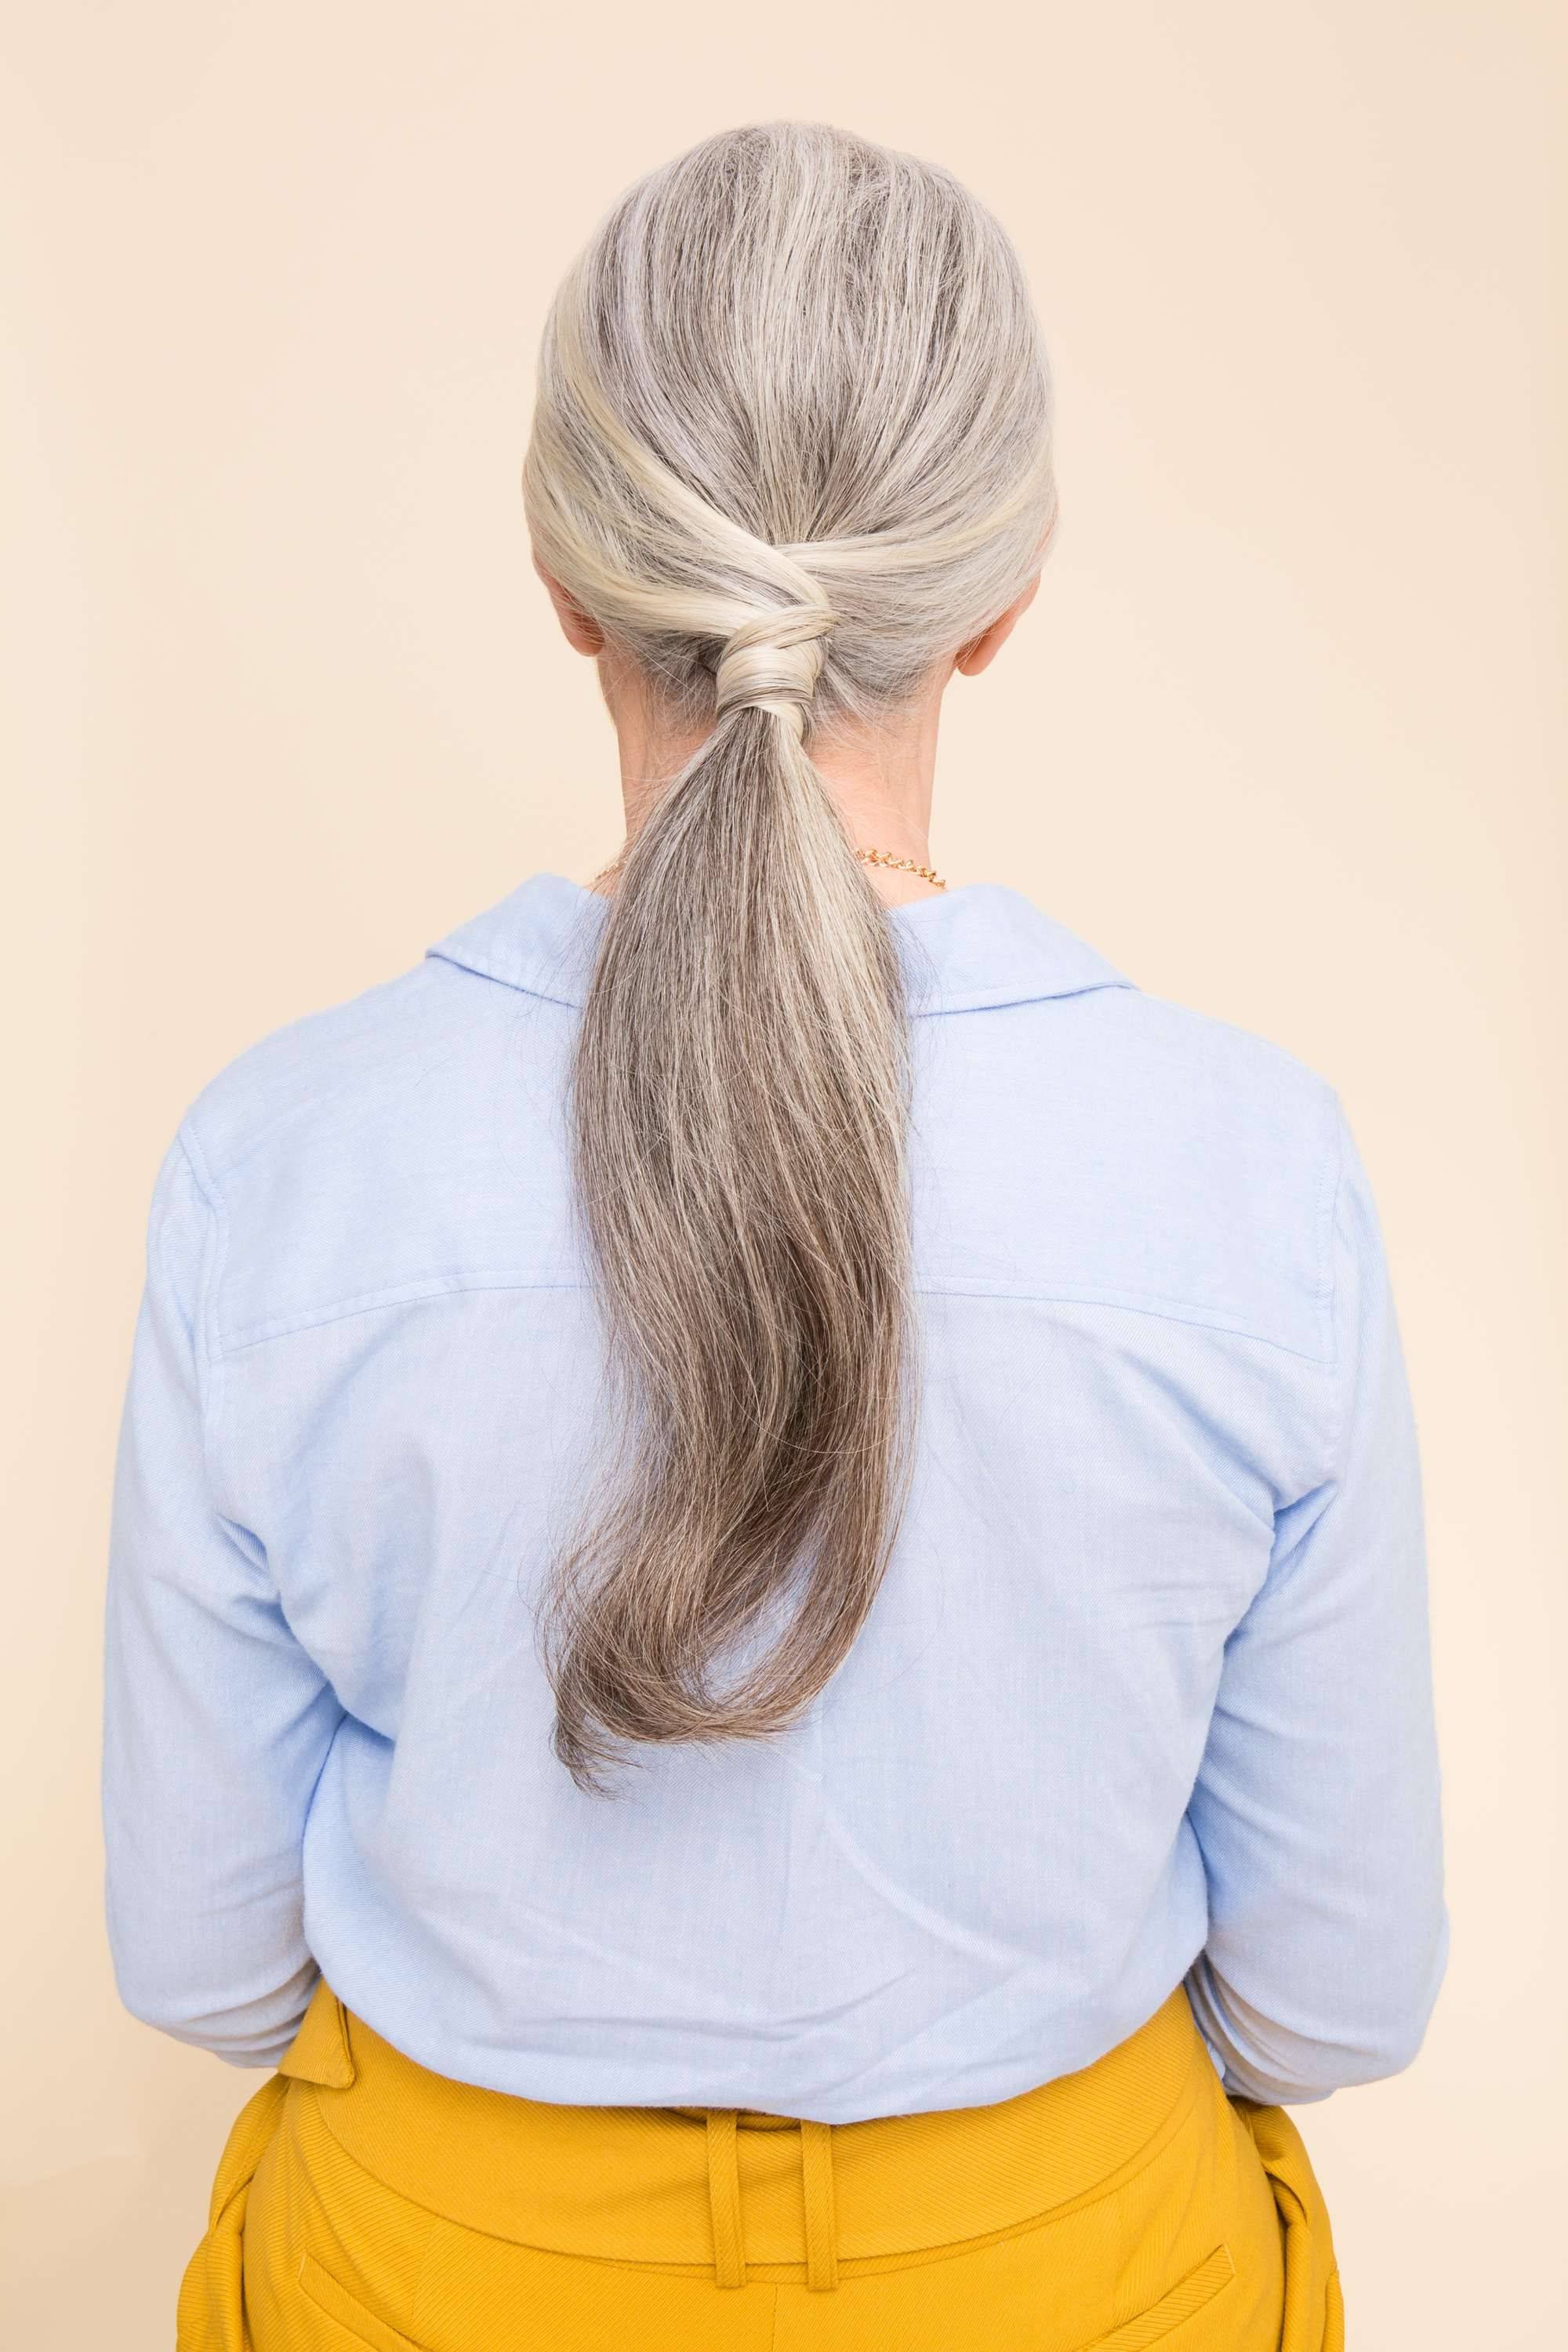 Easy updo - Grey haired model with wrapped ponytail against a pink backdrop